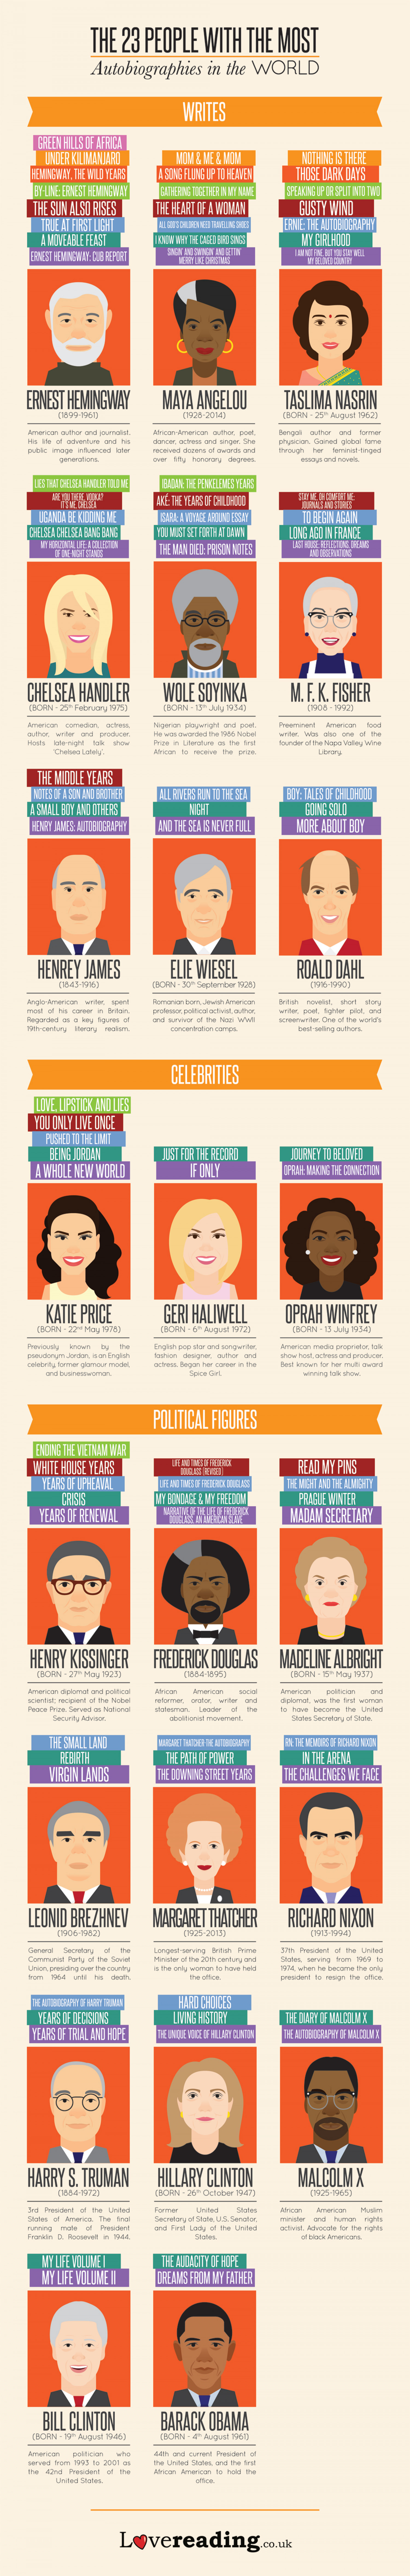 Which Celebrities Have the Most Autobiographies? Infographic